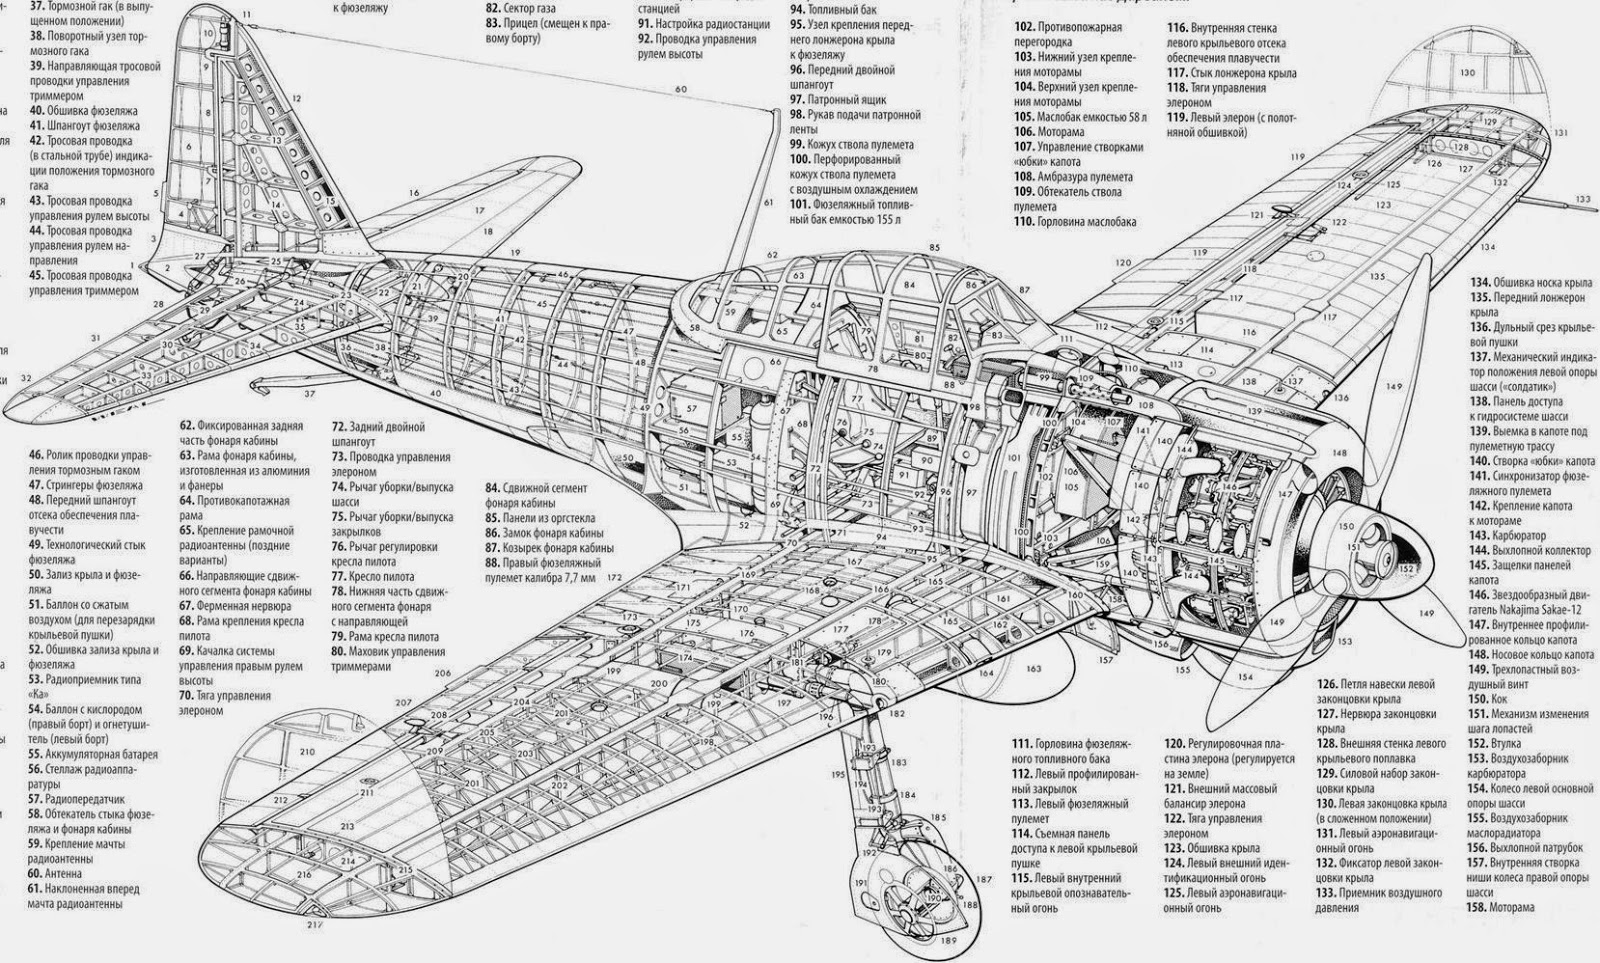 North American P 51 Mustang Schematics on p-38 schematic, p-51d schematic, f-4 schematic, p-51b schematic, aircraft schematic, b-36 schematic, b-17 schematic, kc-135 schematic, b-25 schematic, f-16 schematic, p-11 schematic, dc-3 schematic,